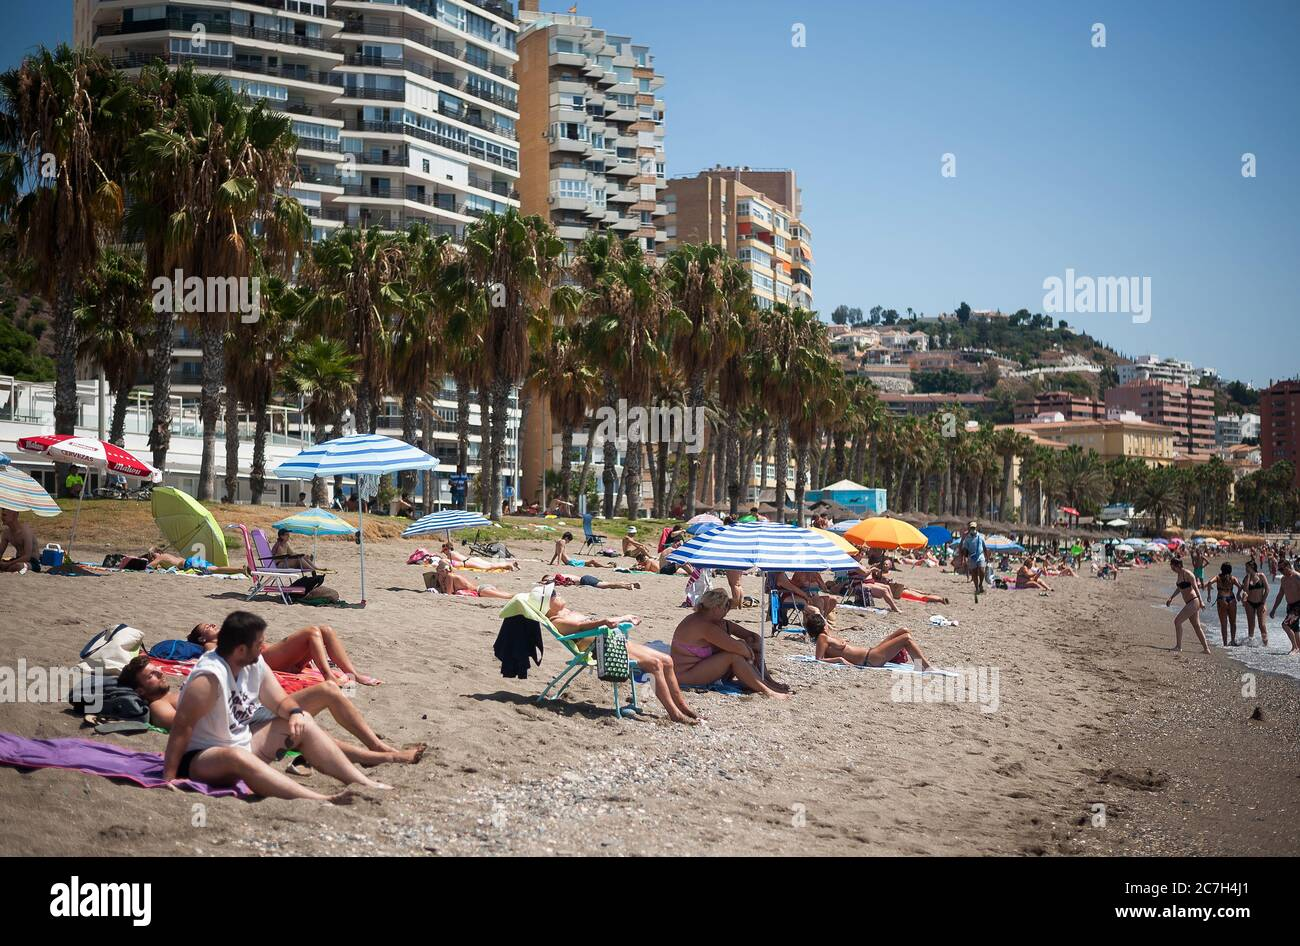 Malaga, Spain. 17th July, 2020. General view of La Malagueta beach as people sunbathe amid coronavirus crisis.The appearance of new coronavirus (COVID-19) outbreak in Spain after easing of restrictions has caused the regional government to impose the obligatory use of face masks in outdoors places even when they observe a safe distance between people. This measure tries to curb the spread of coronavirus pandemic. Credit: SOPA Images Limited/Alamy Live News Stock Photo